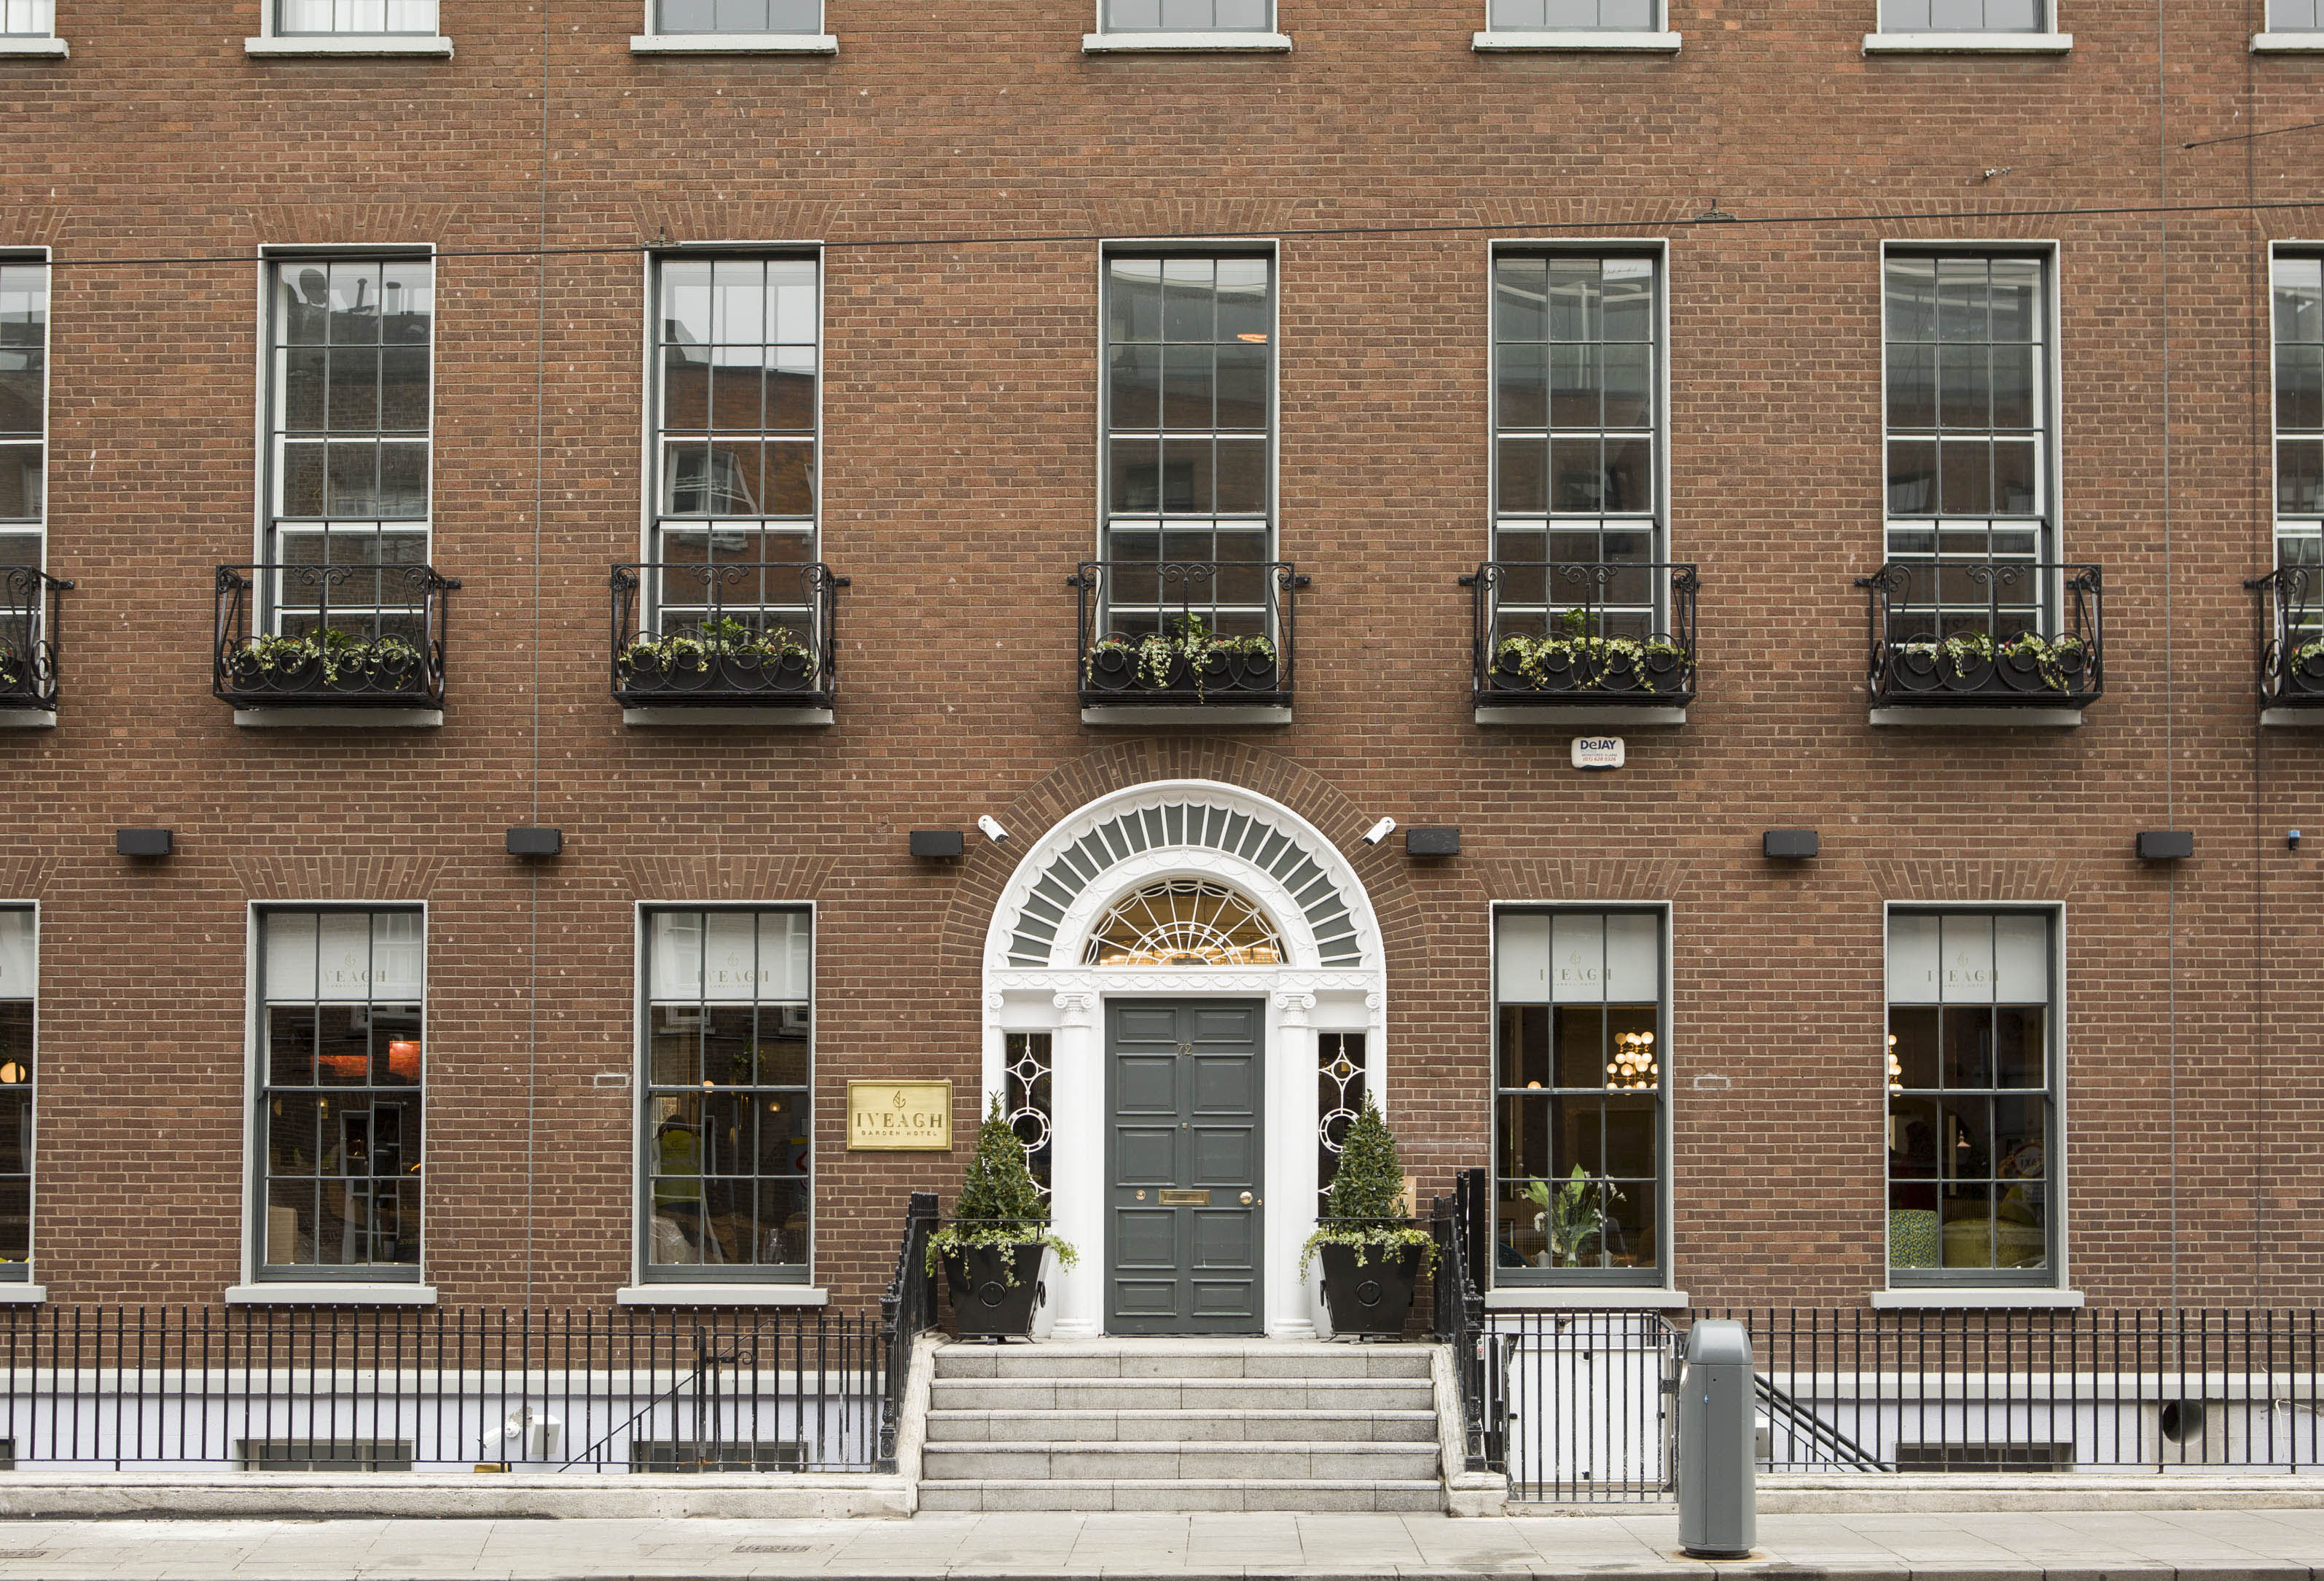 Iveagh Garden Hotel on Harcourt Street, Dublin 2  For further information please contact Mari O'Leary 017898888 or marioleary@olearypr.ie